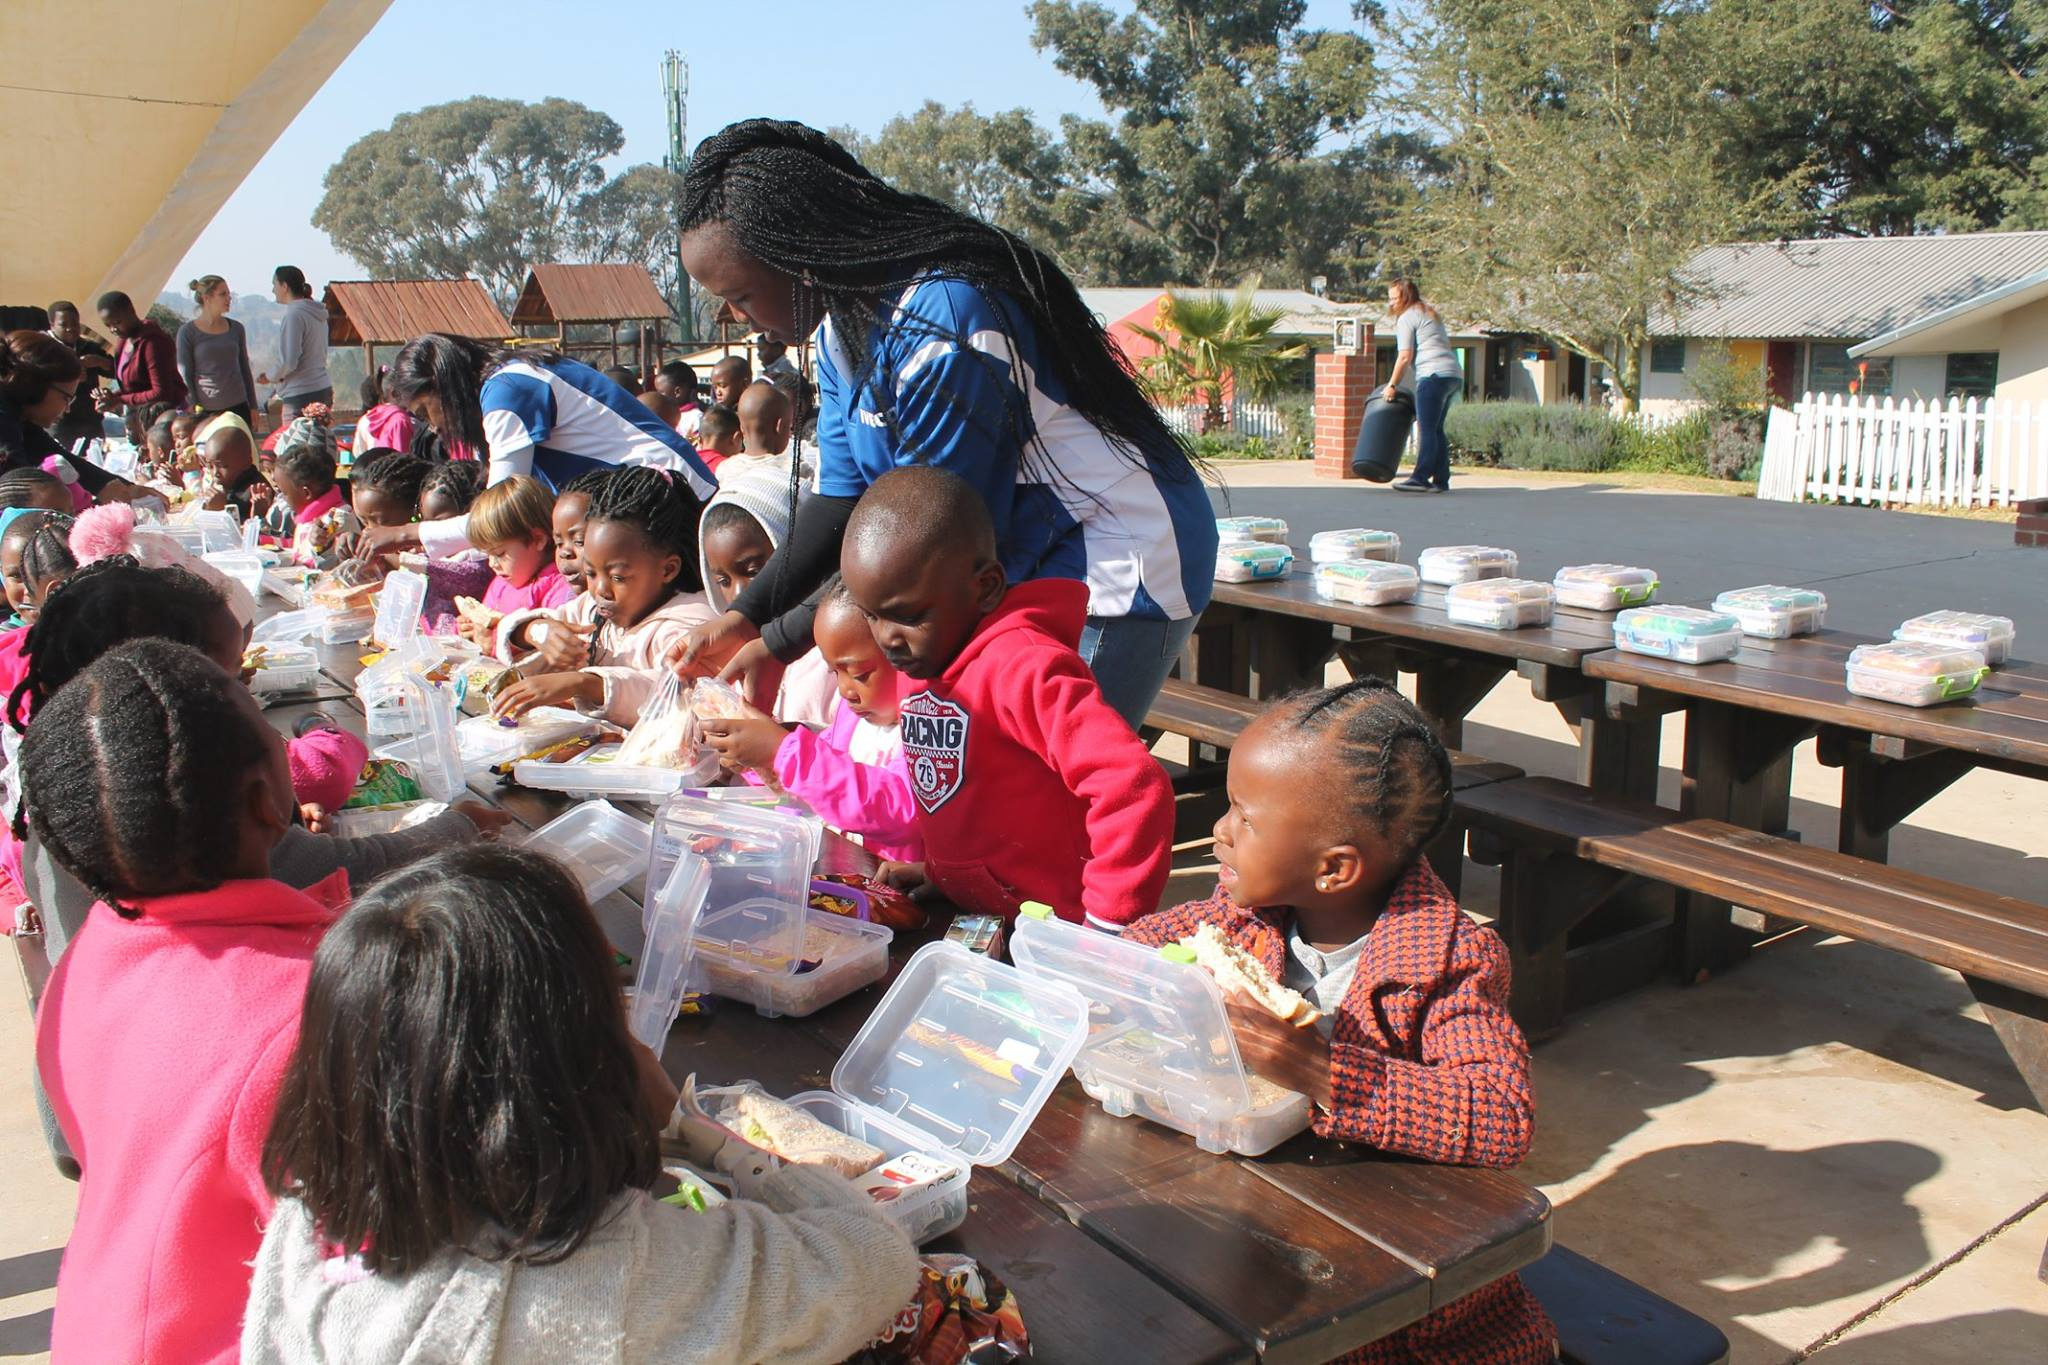 In honour of Mandela Day, Iveco South Africa lent its support to Botshabelo's Urban Kids Educentre in Midrand. Urban Kids Educentre is a preschool that caters to underprivileged and emerging families living in the surrounding area.